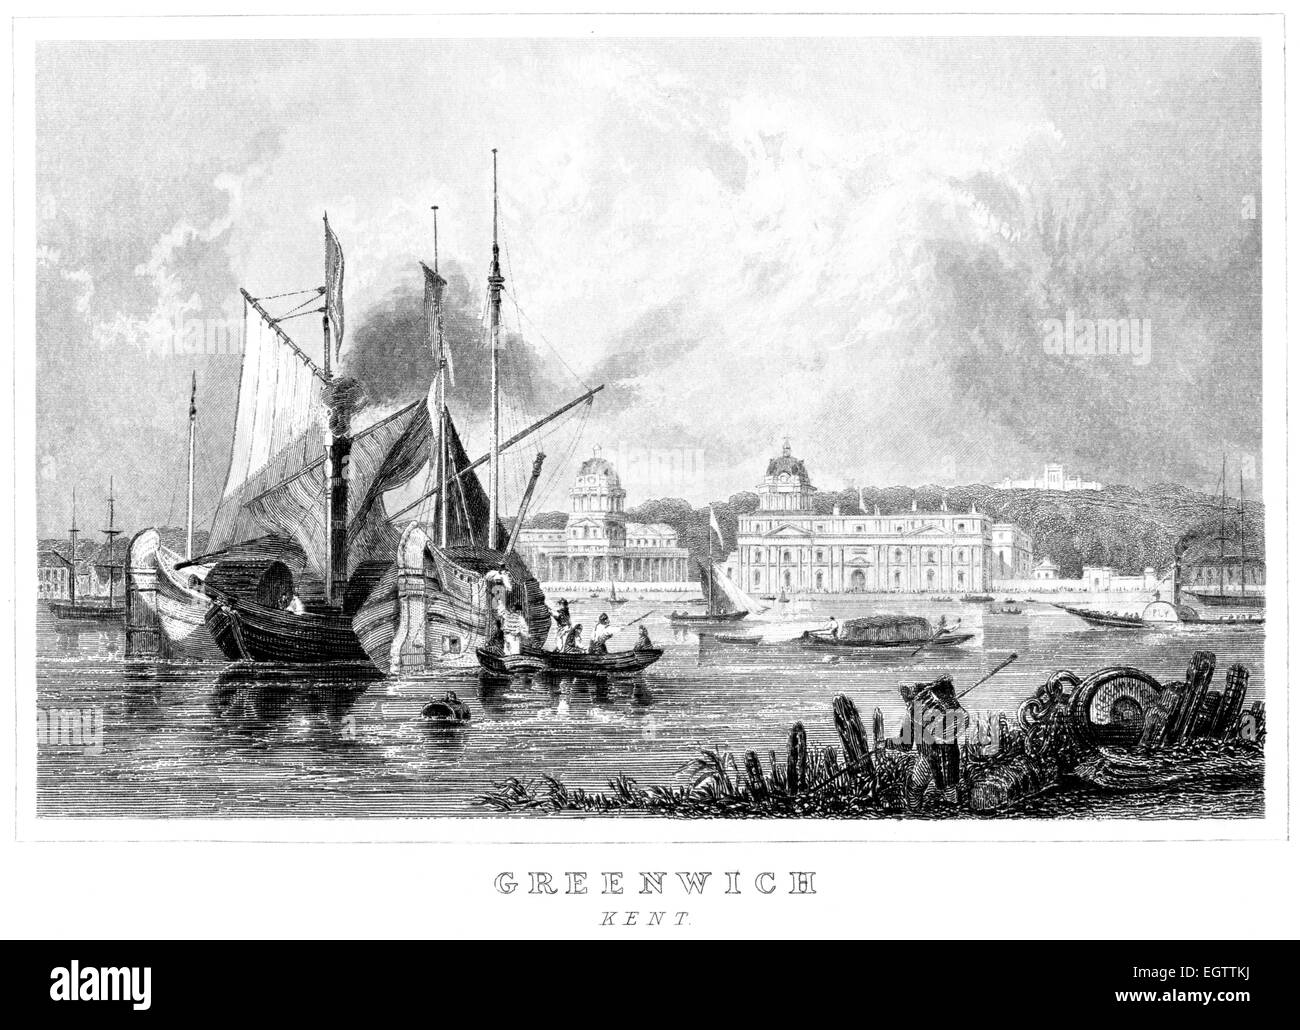 An engraving of Greenwich, Kent scanned at high resolution from a book printed around 1850. - Stock Image